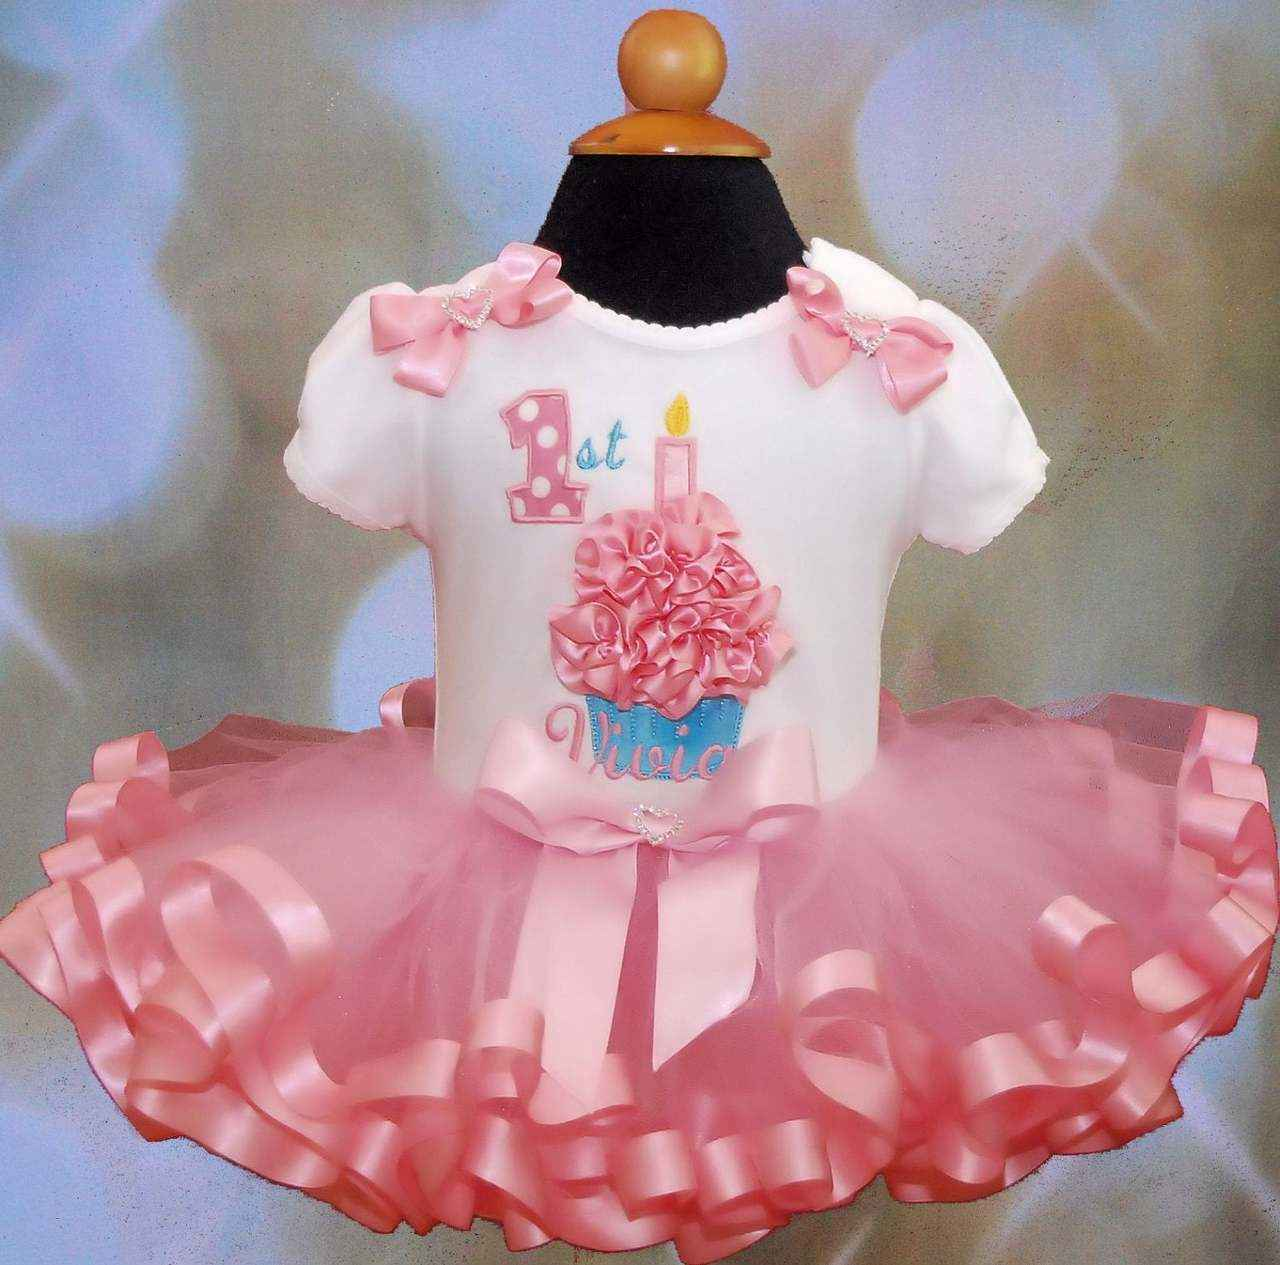 3D Cupcake 1st Birthday girl Outfit 1st birthday tutu dress